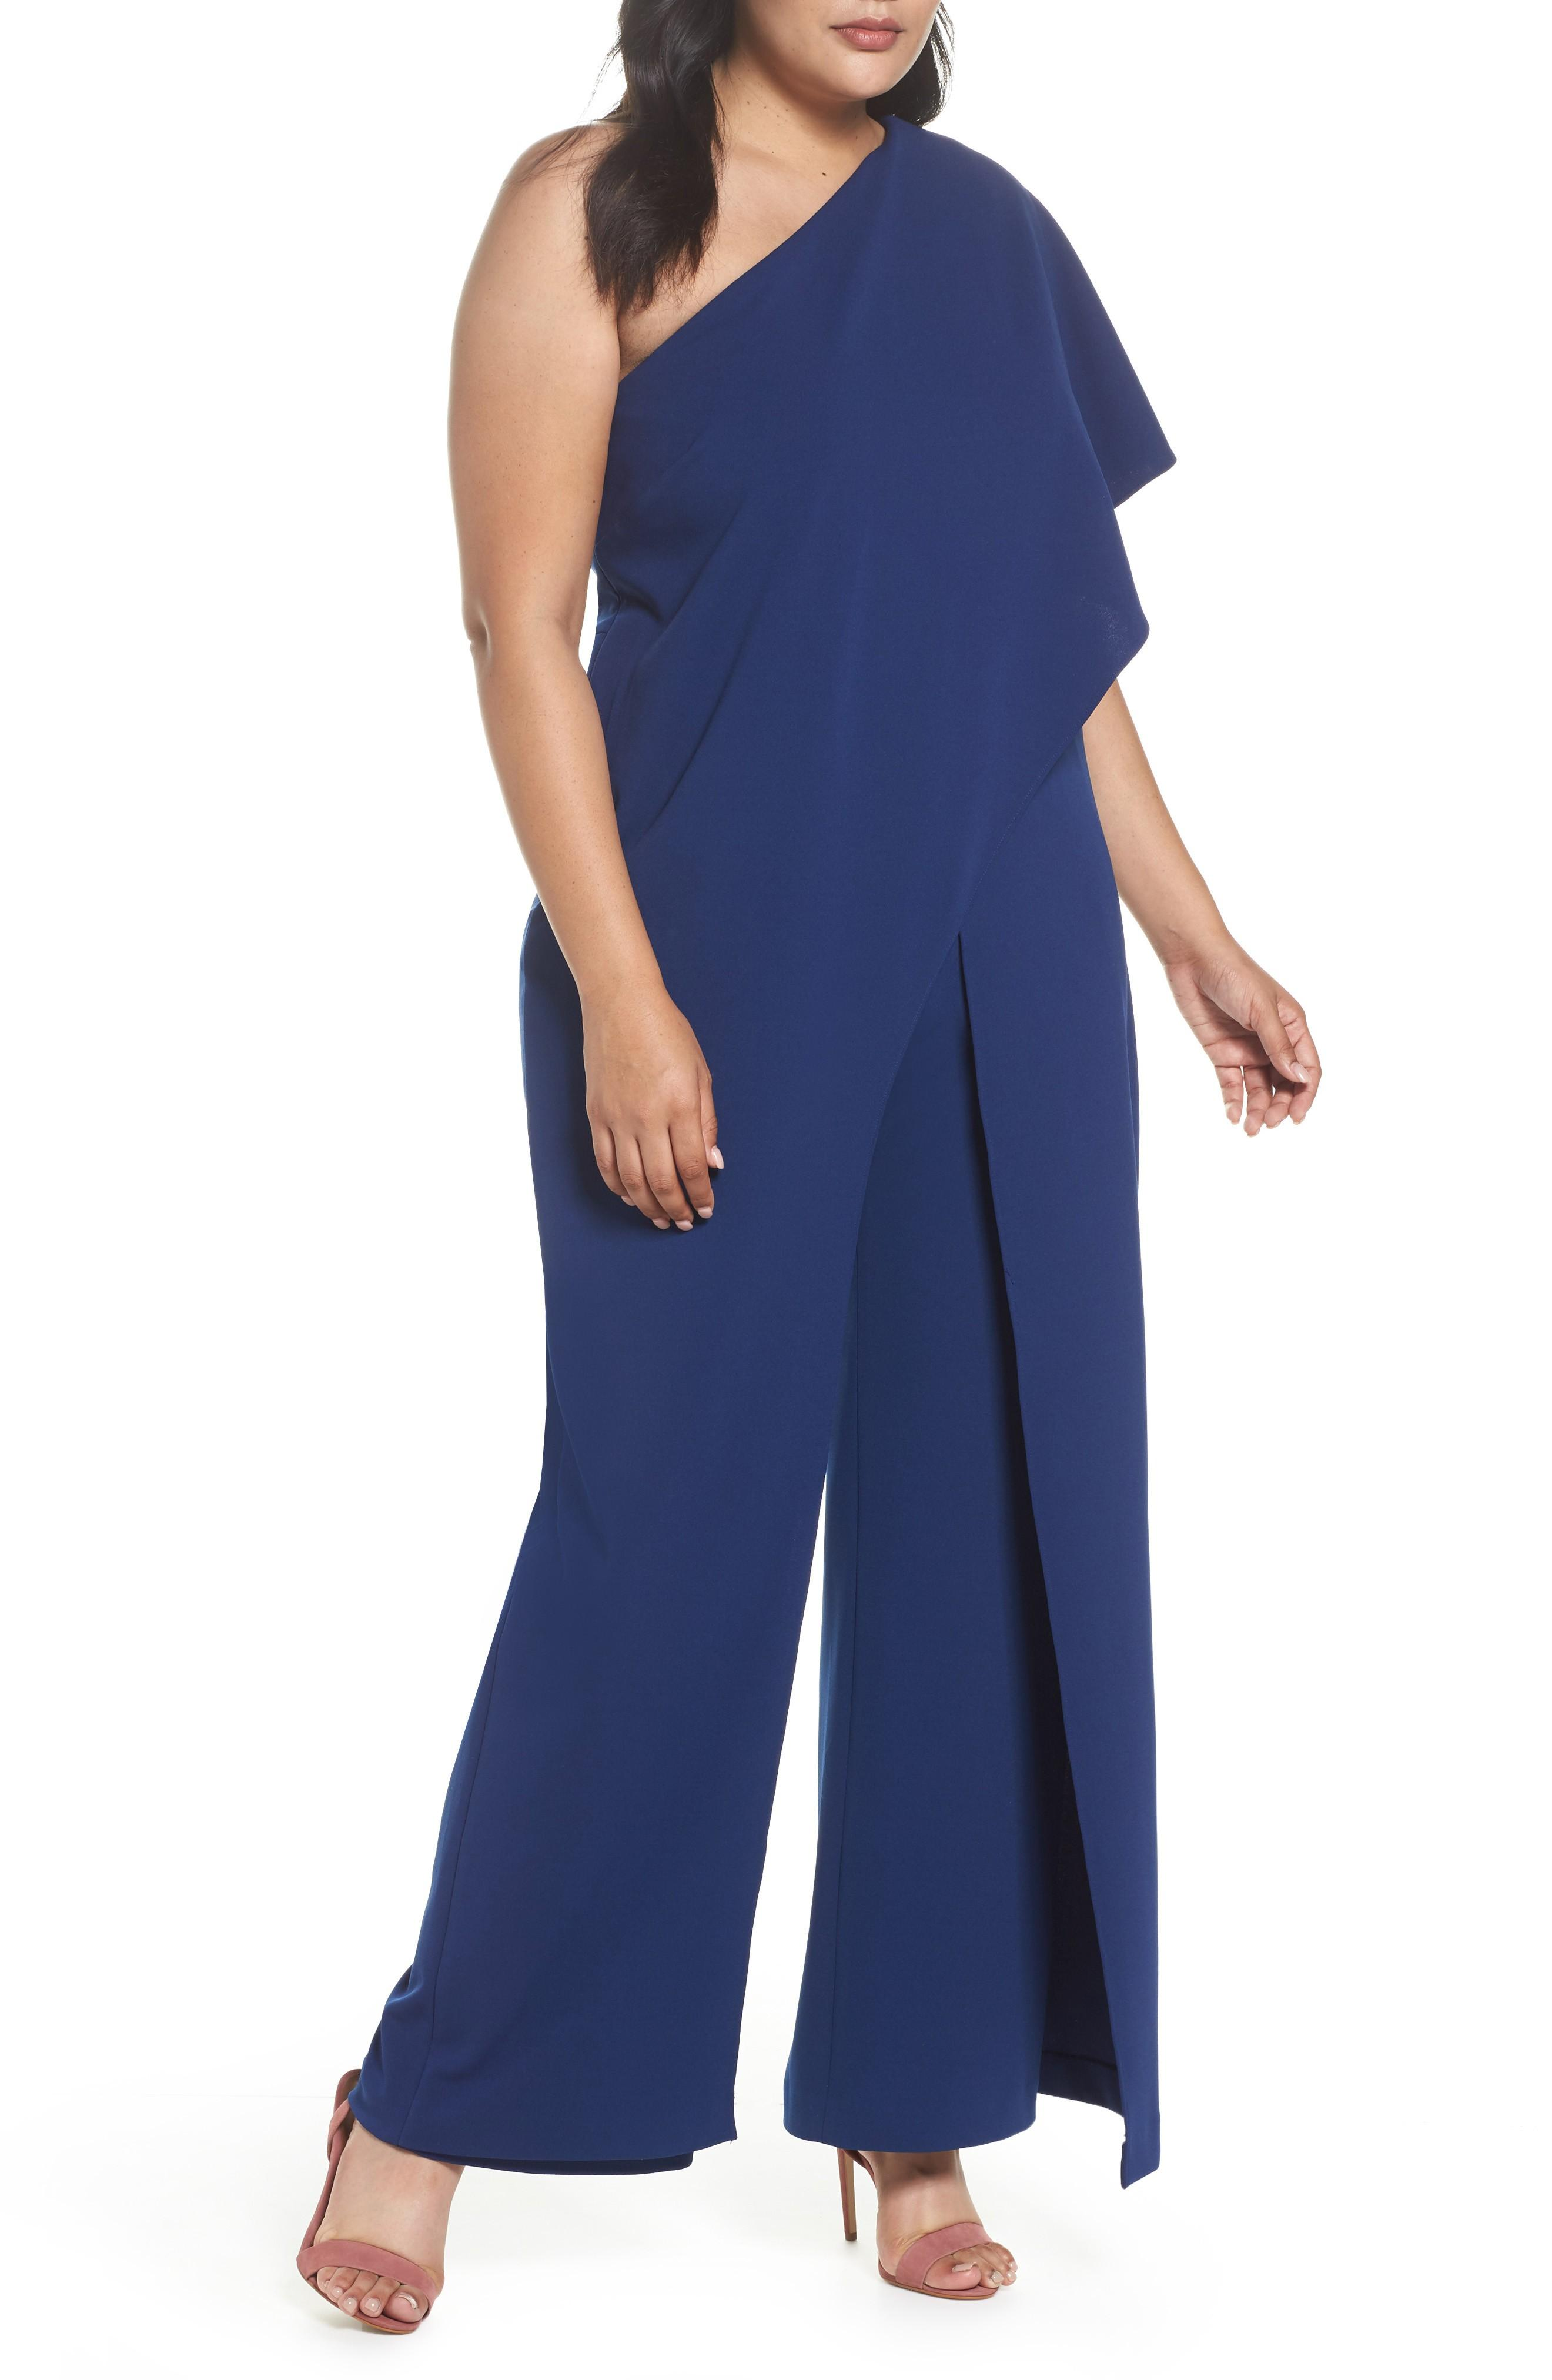 83f337a1381b Style Name  Adrianna Papell One-Shoulder Jumpsuit (Plus Size). Style  Number  5331879.